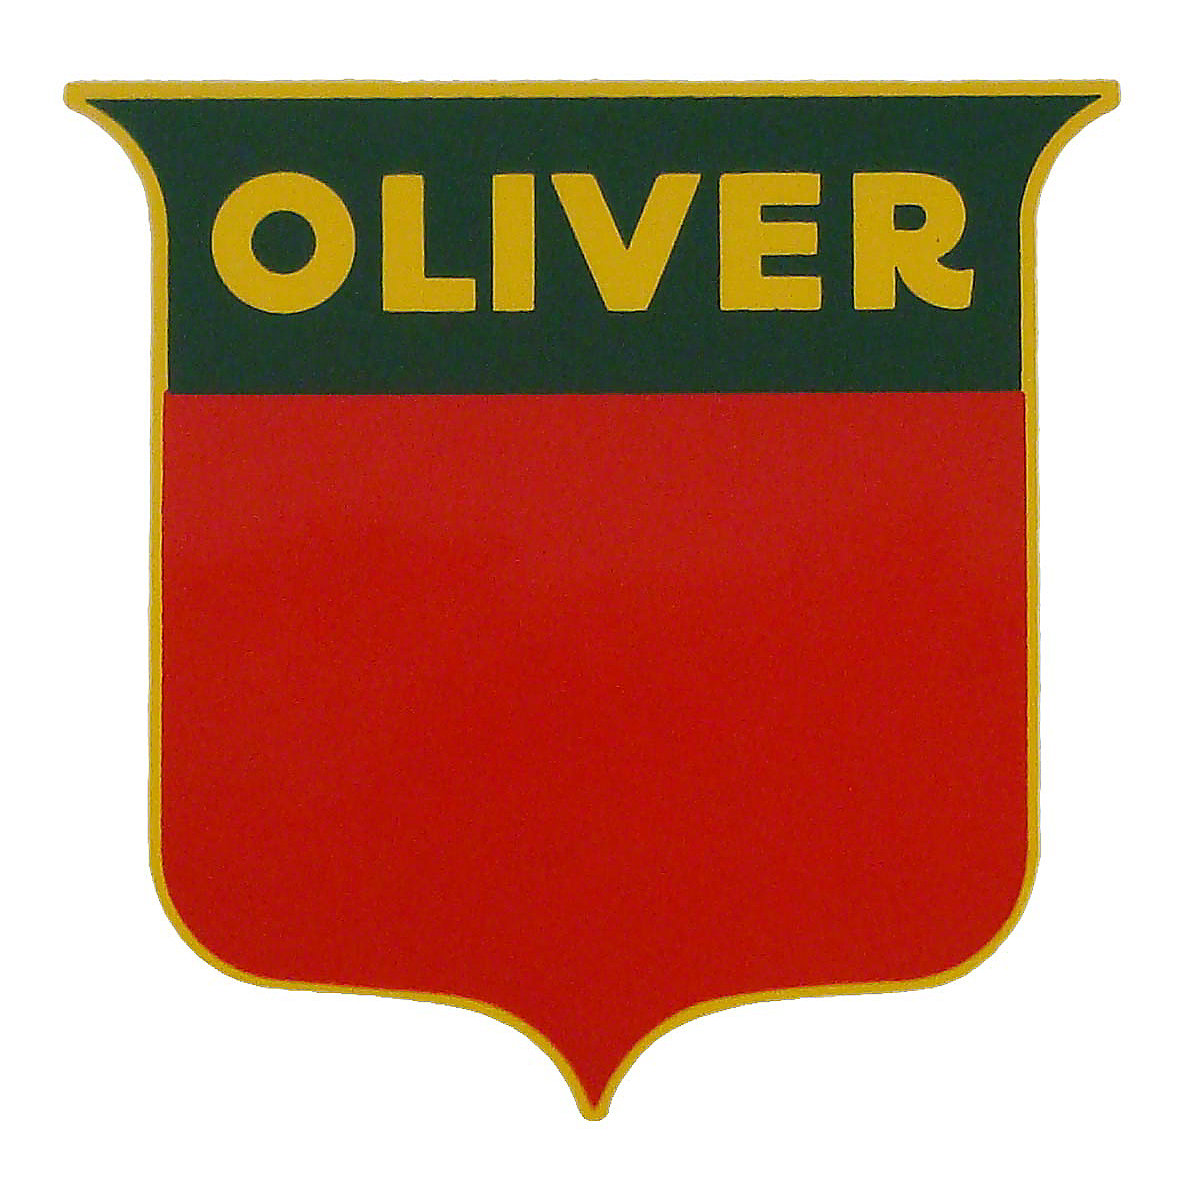 Oliver Tractor Decals : Dec oliver shield decal